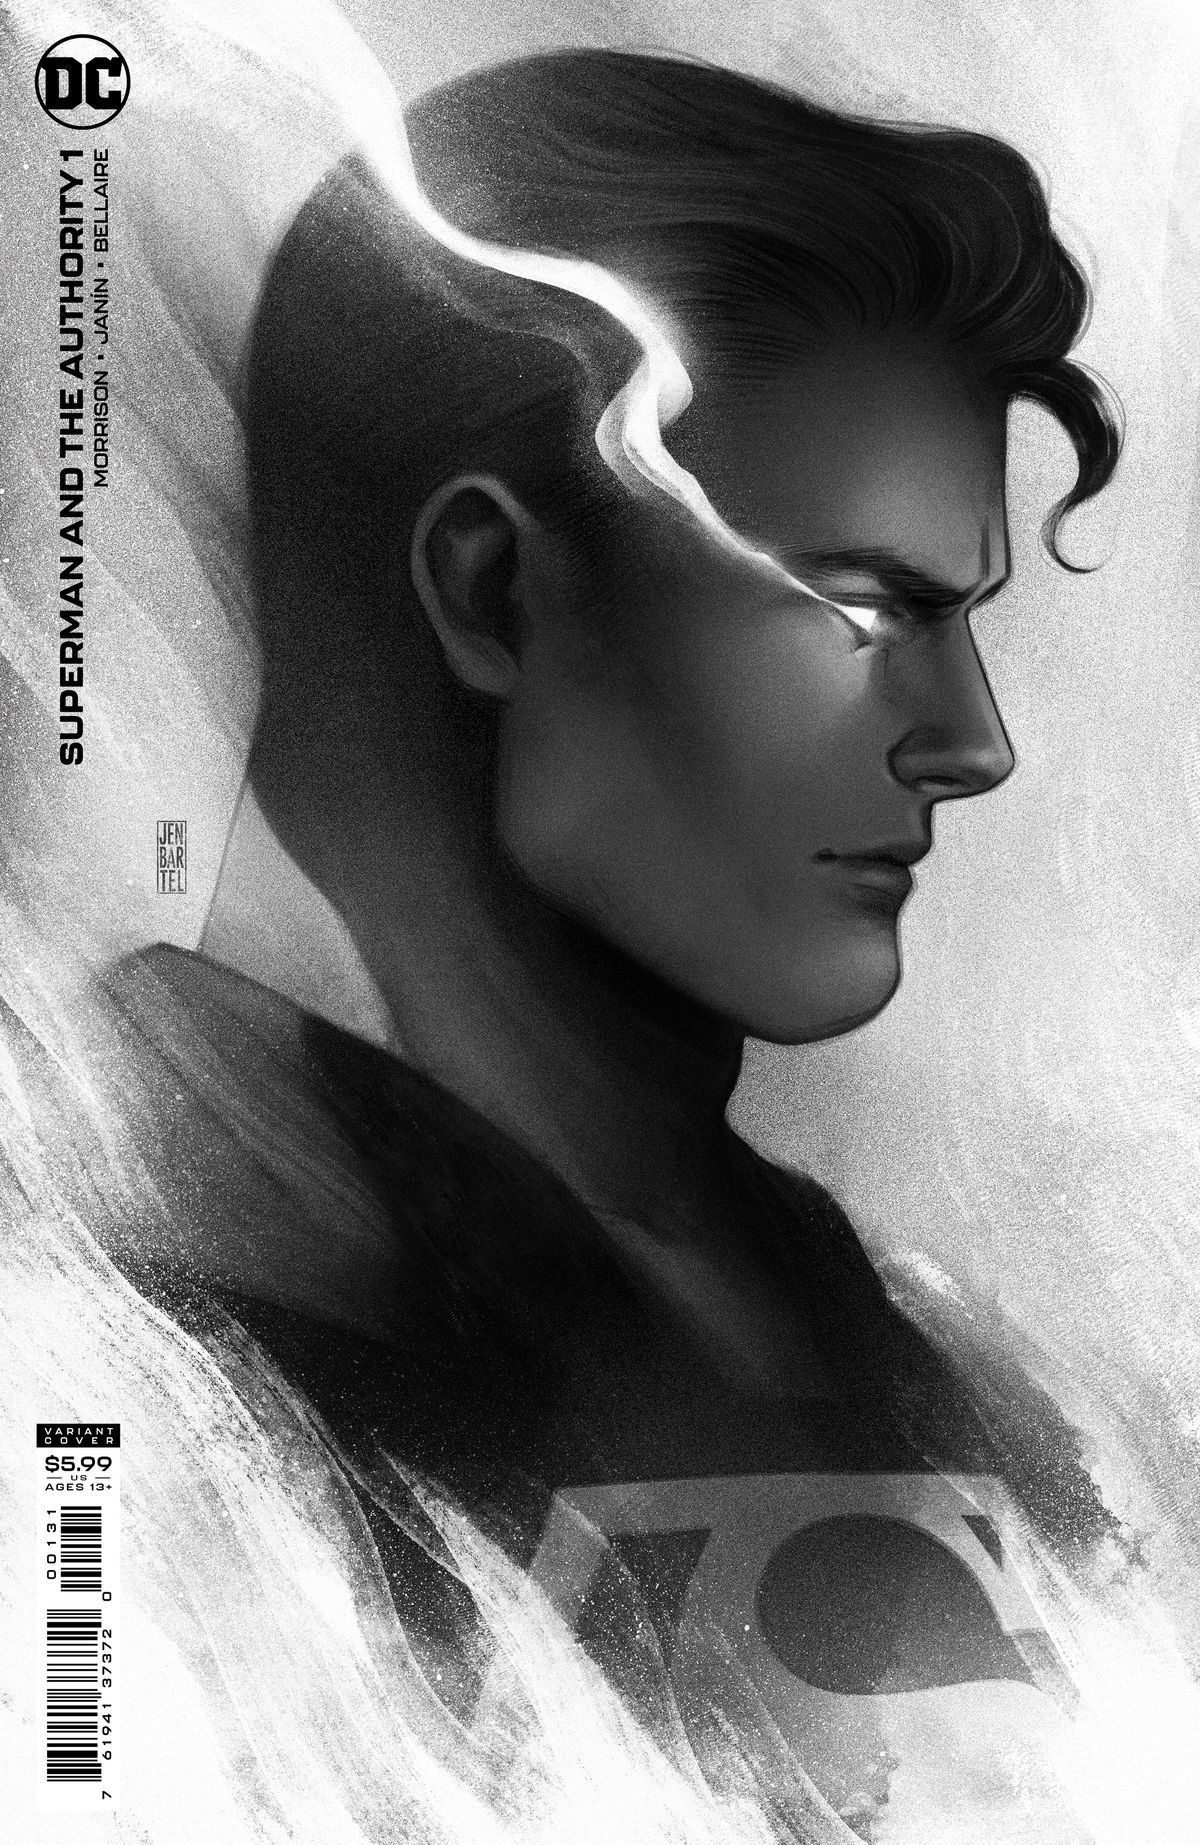 A greyscale profile rendering of Clark Kent/Superman with eyes blazing from his heat vision on the cover of Superman and the Authority #1, DC Comics (2021).